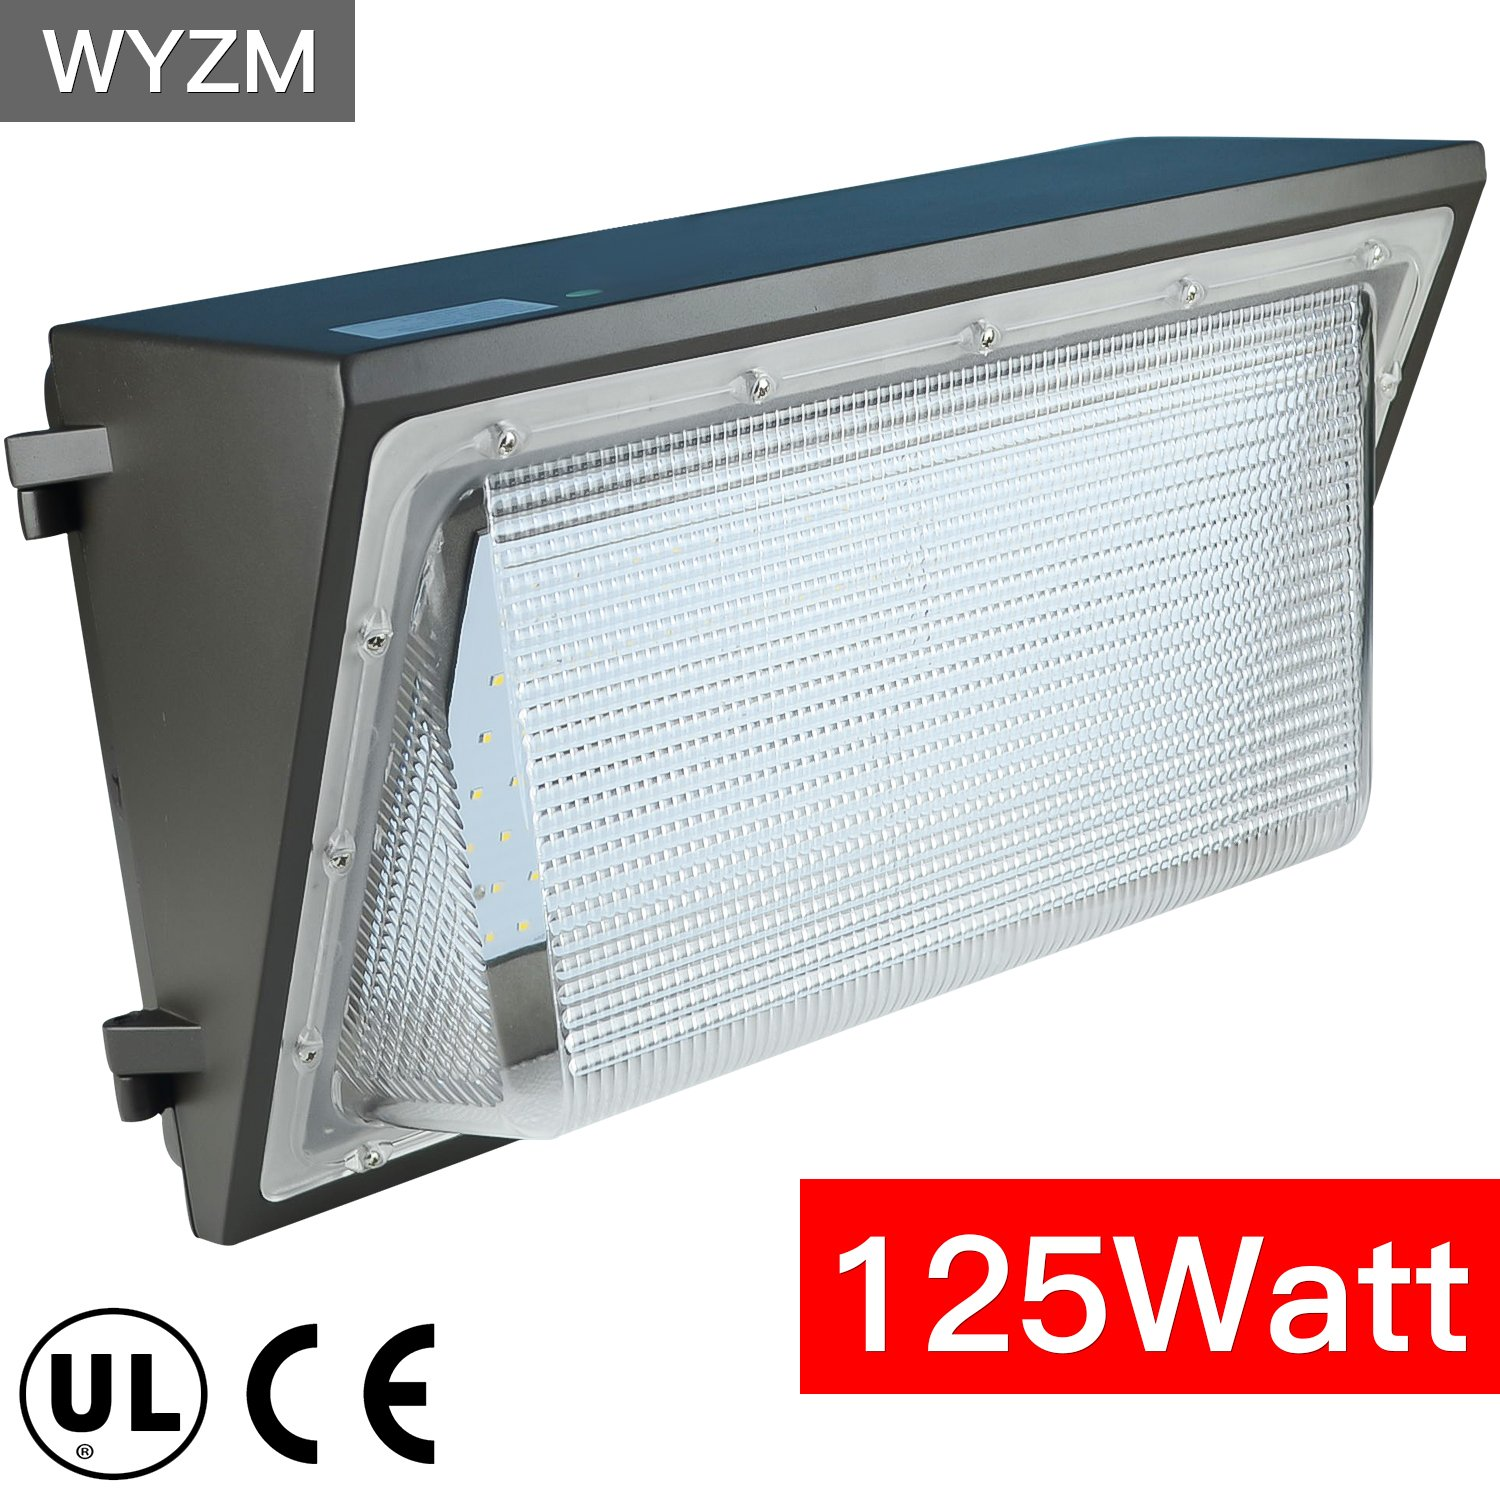 125W LED Wall Pack Light,Super Bright 14000LM,IP68 Waterproof,550~600W HPS MH Bulb Replacement,Outdoor Security LED Lighting Fixture for Building Home Security and Walkways (125Watt) by WYZM